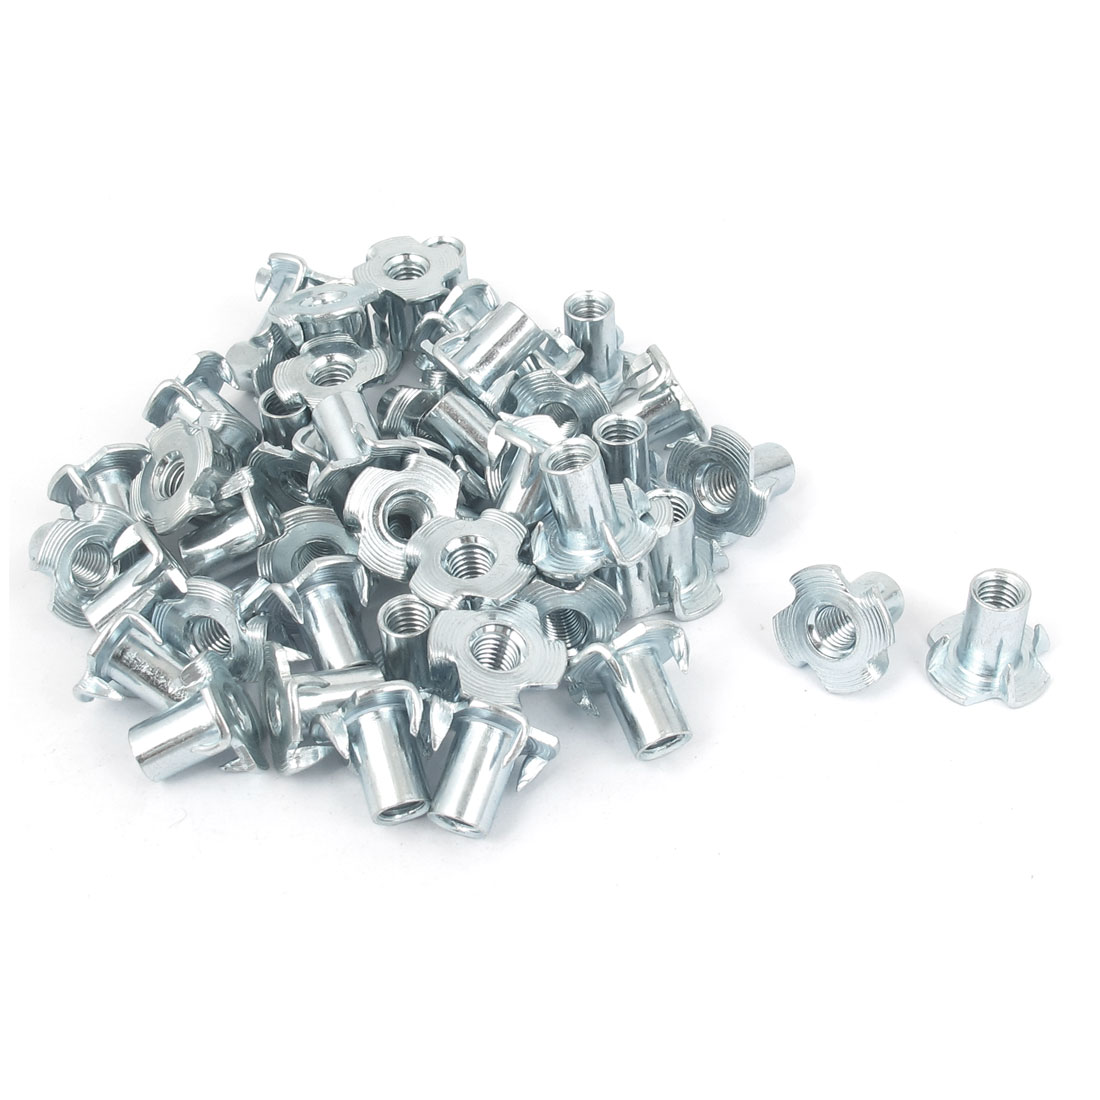 50 Pcs 4 Prongs Zinc Plated T-Nut Tee Nut Fixing M6 x 14mm